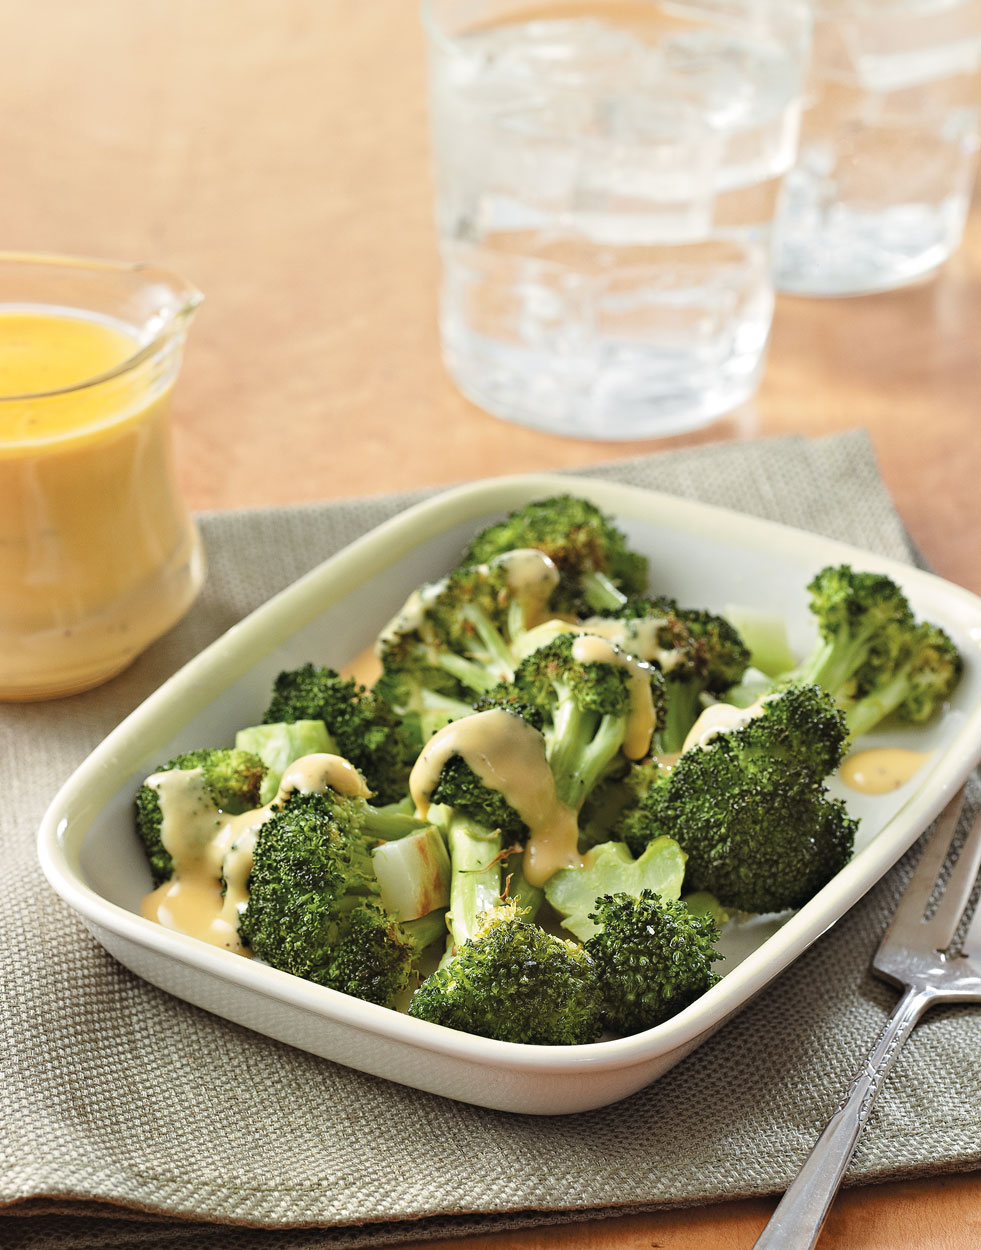 Roasted Broccoli With Cheese Sauce Recipe